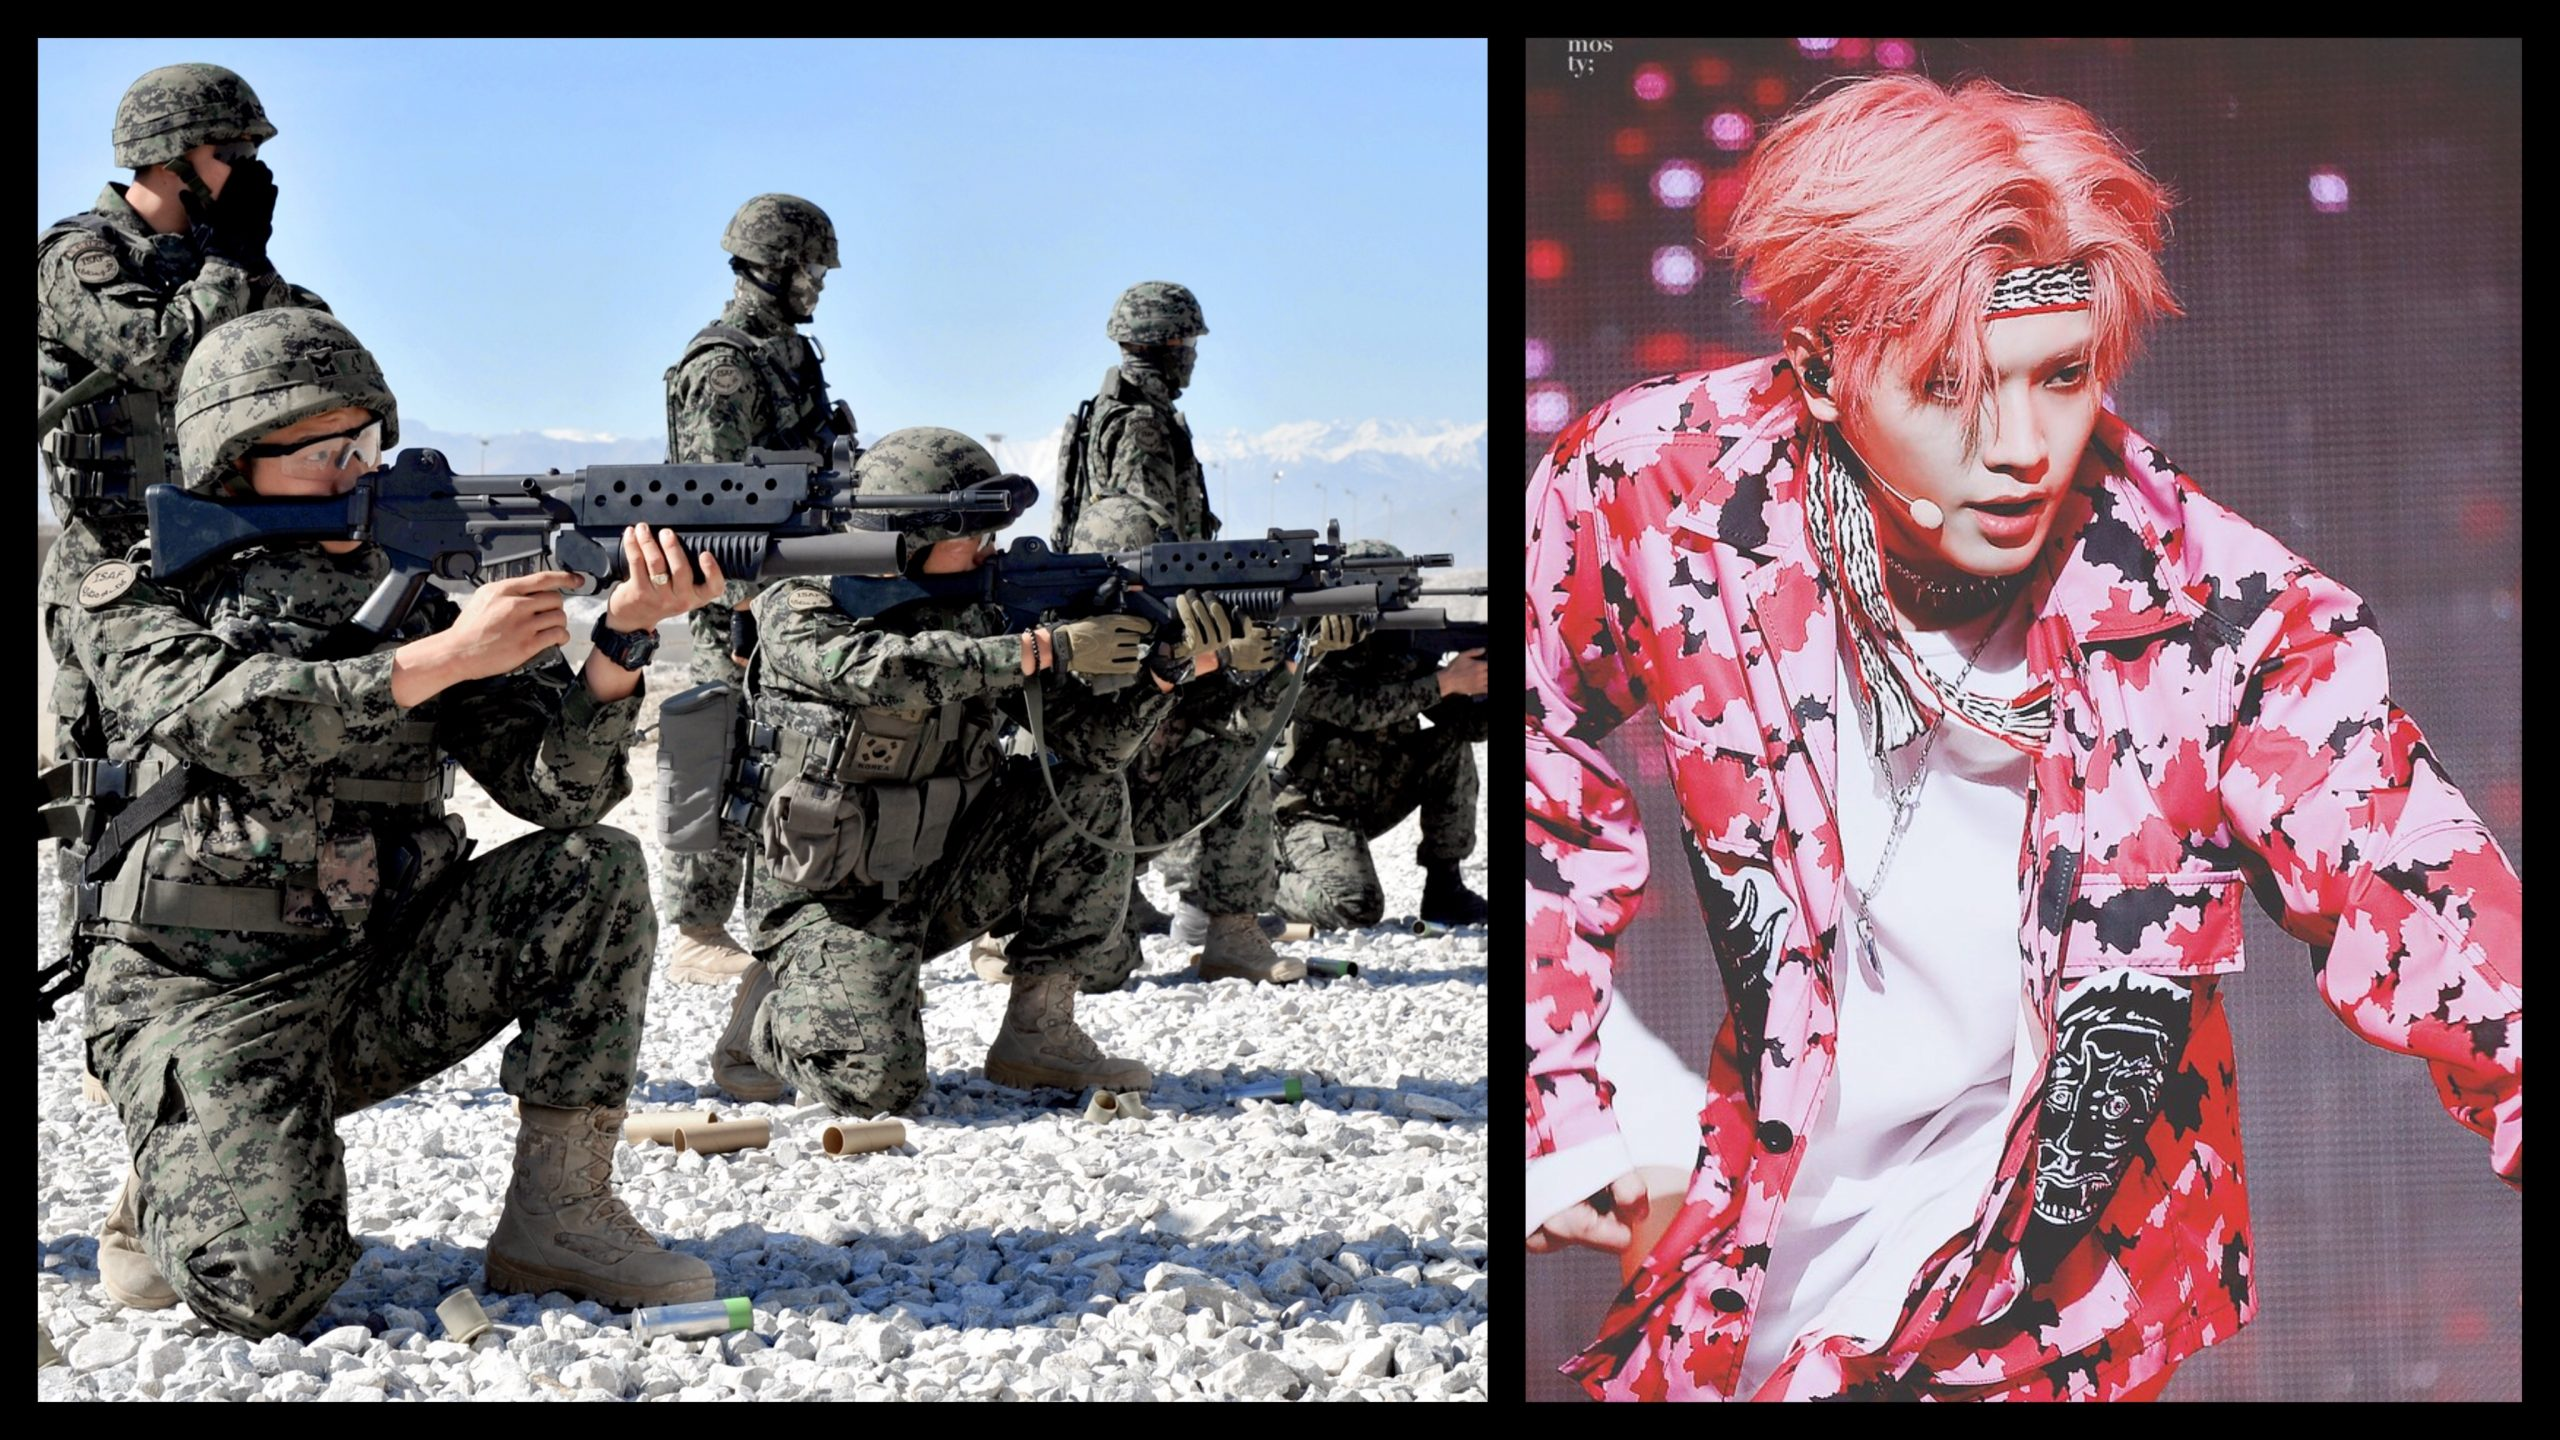 Photograph of Republic of Korea soldiers wearing camoflauge fatigues and pointing machine guns juxtaposed with a photograph of Taeyong NCT performing in a pink camoflauge shirt